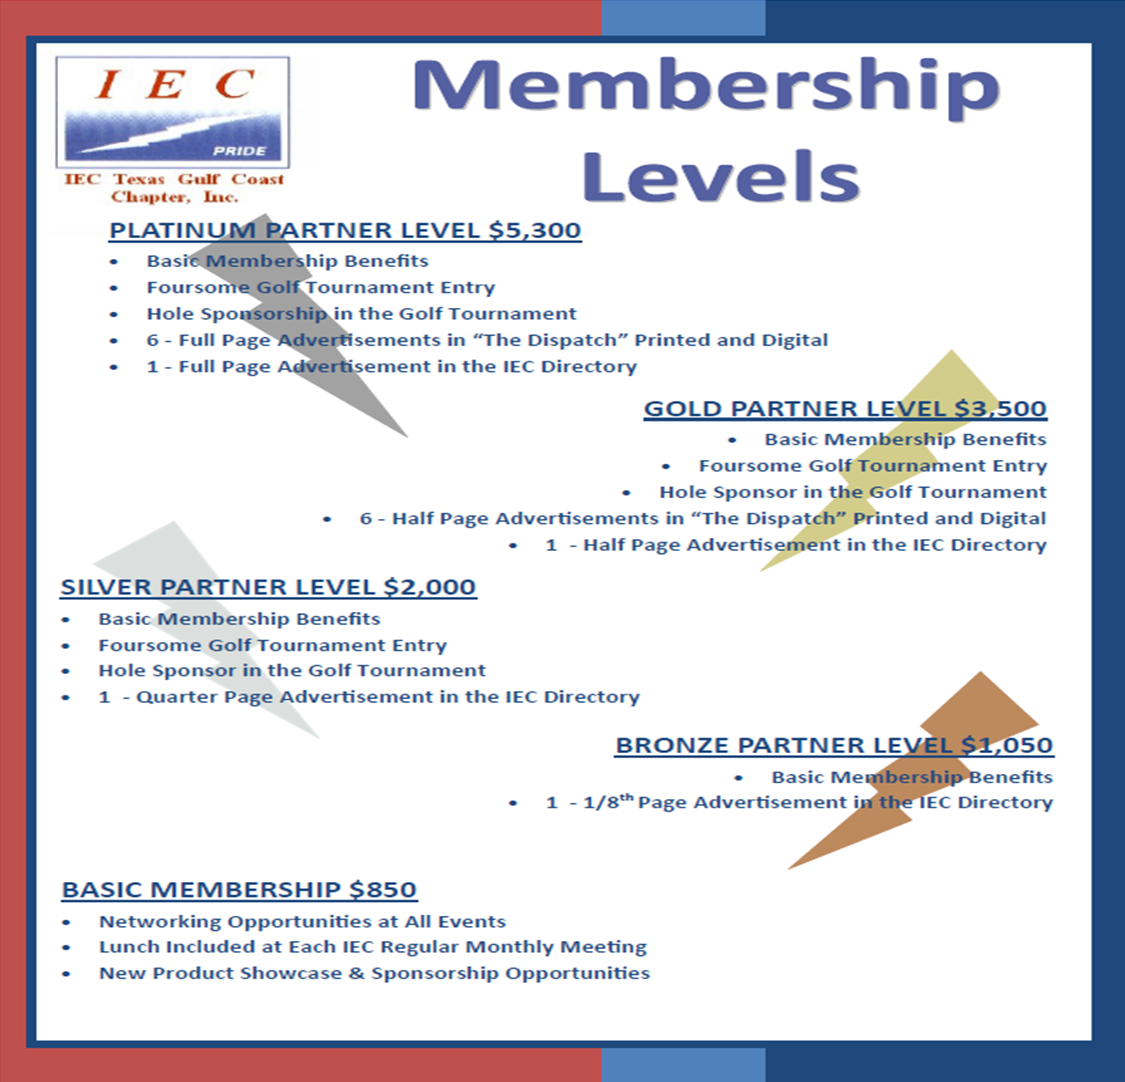 IEC Texas Gulf Coast - Associate Application Form